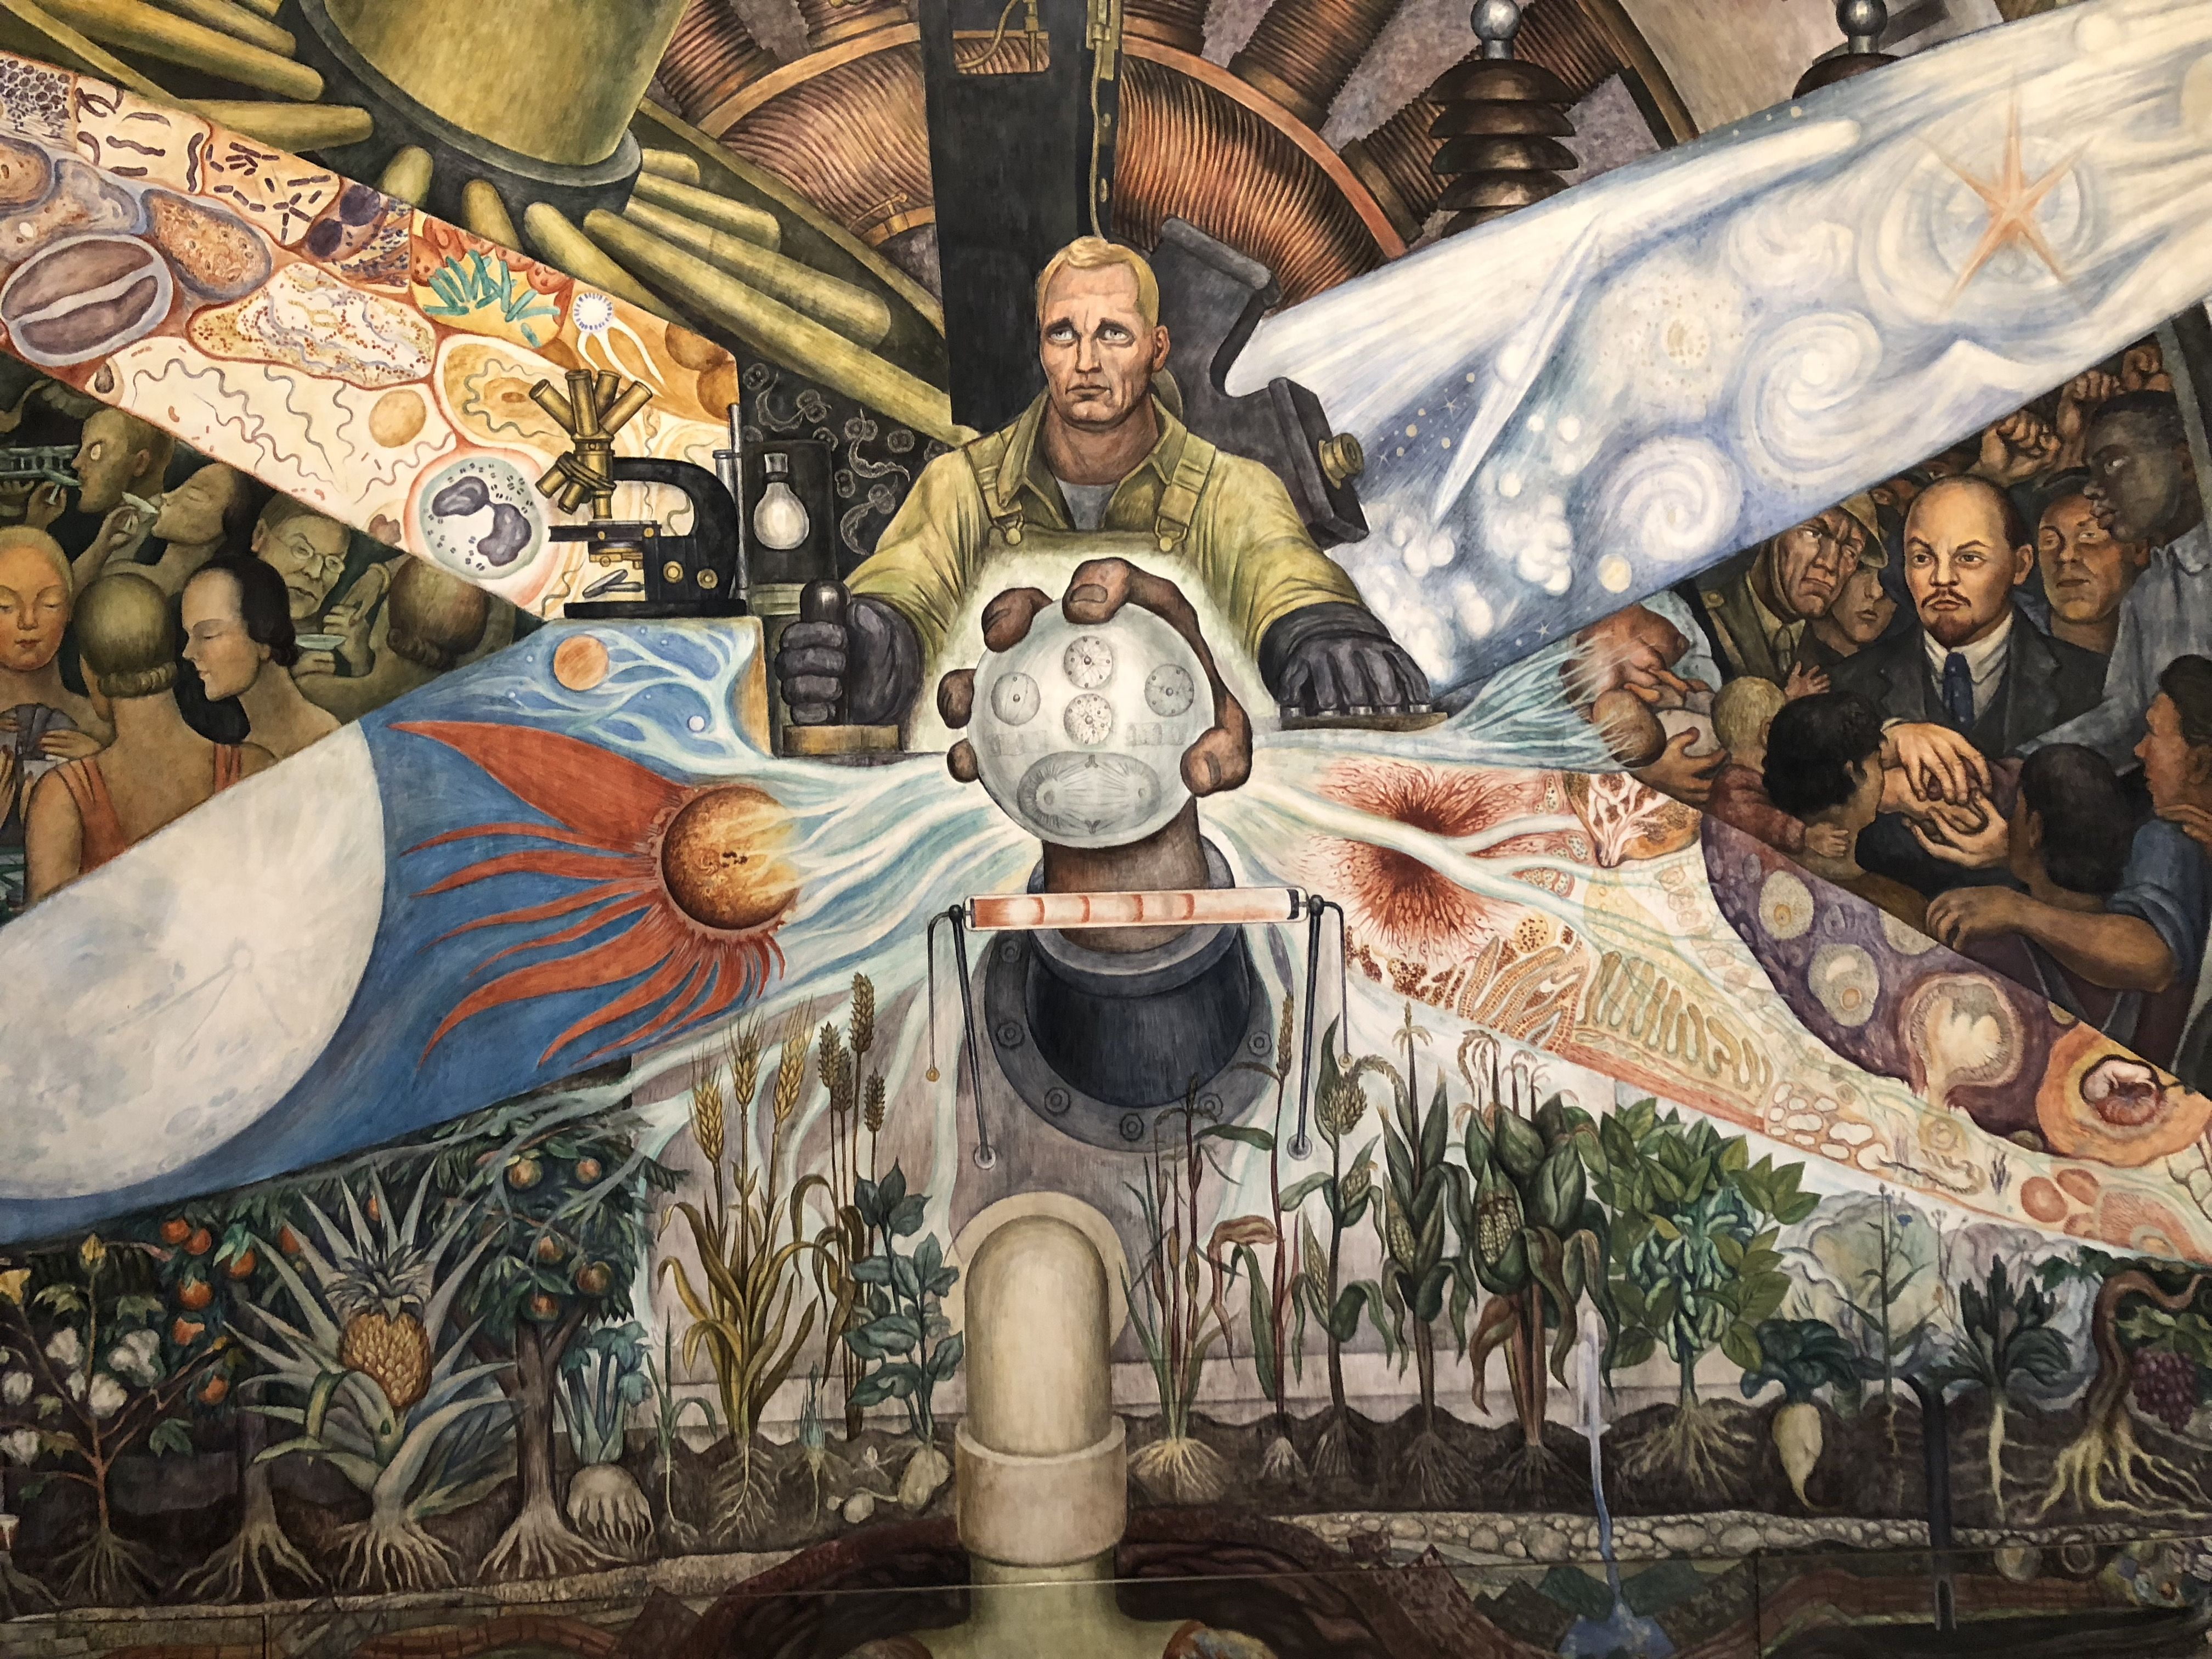 Diego Rivera, Man Controller of the Universe | Diego rivera, Frida and  diego, Political art